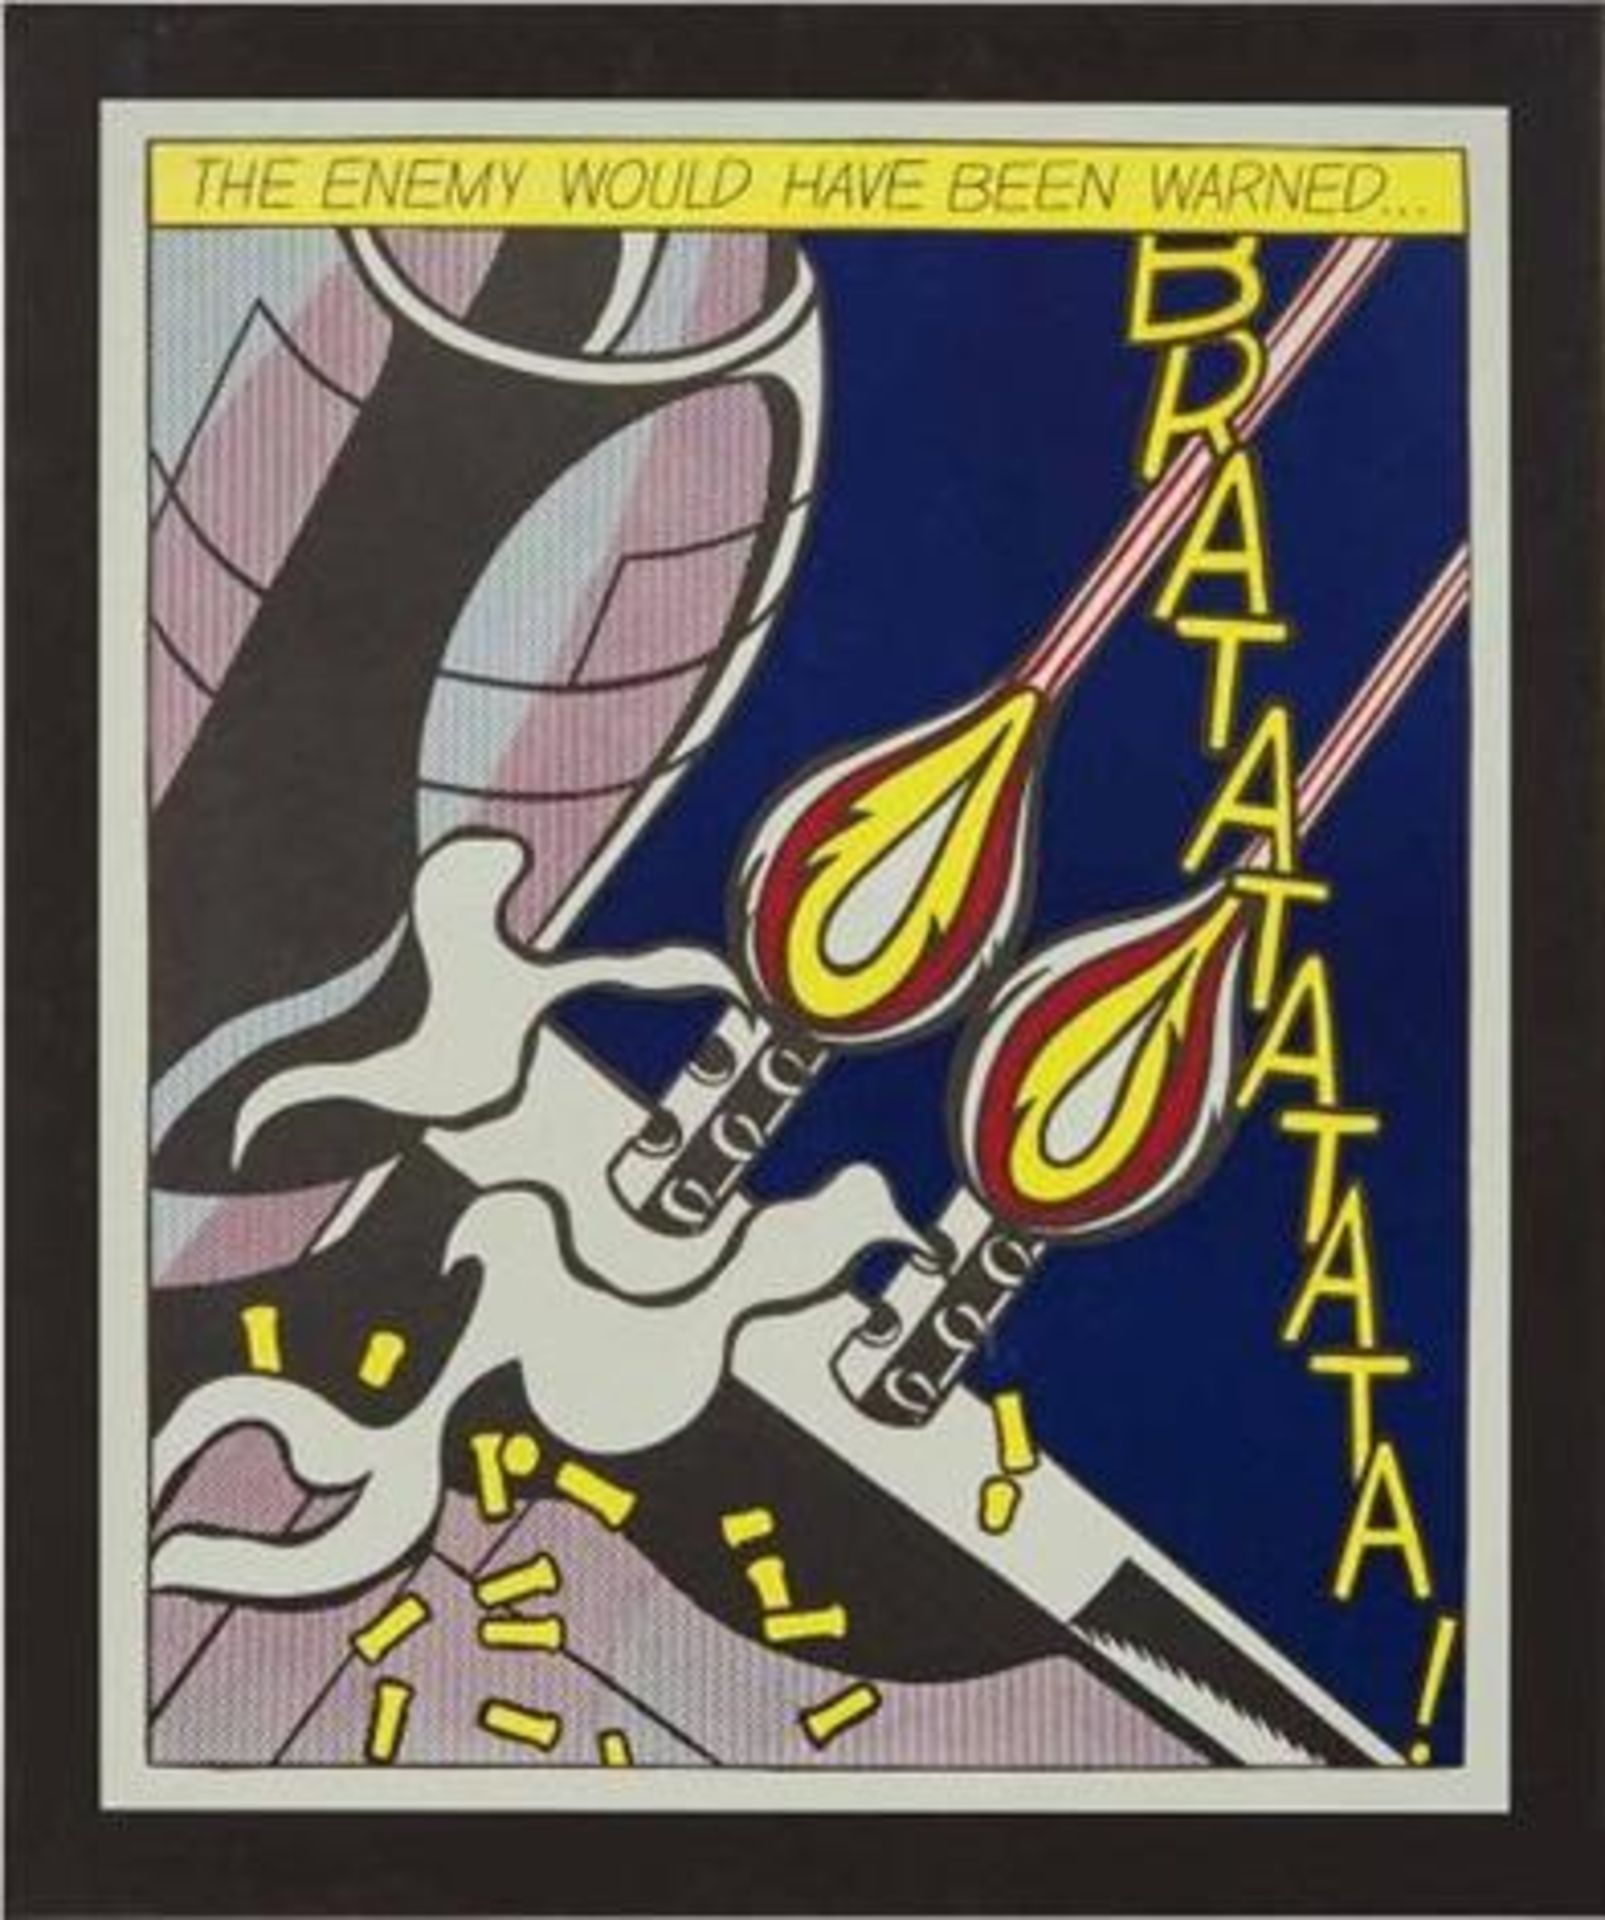 Los 25 - After Roy Lichtenstein (1932-1997) As i opened fire - 2 nach 1966 Offset-Lithographie Poster